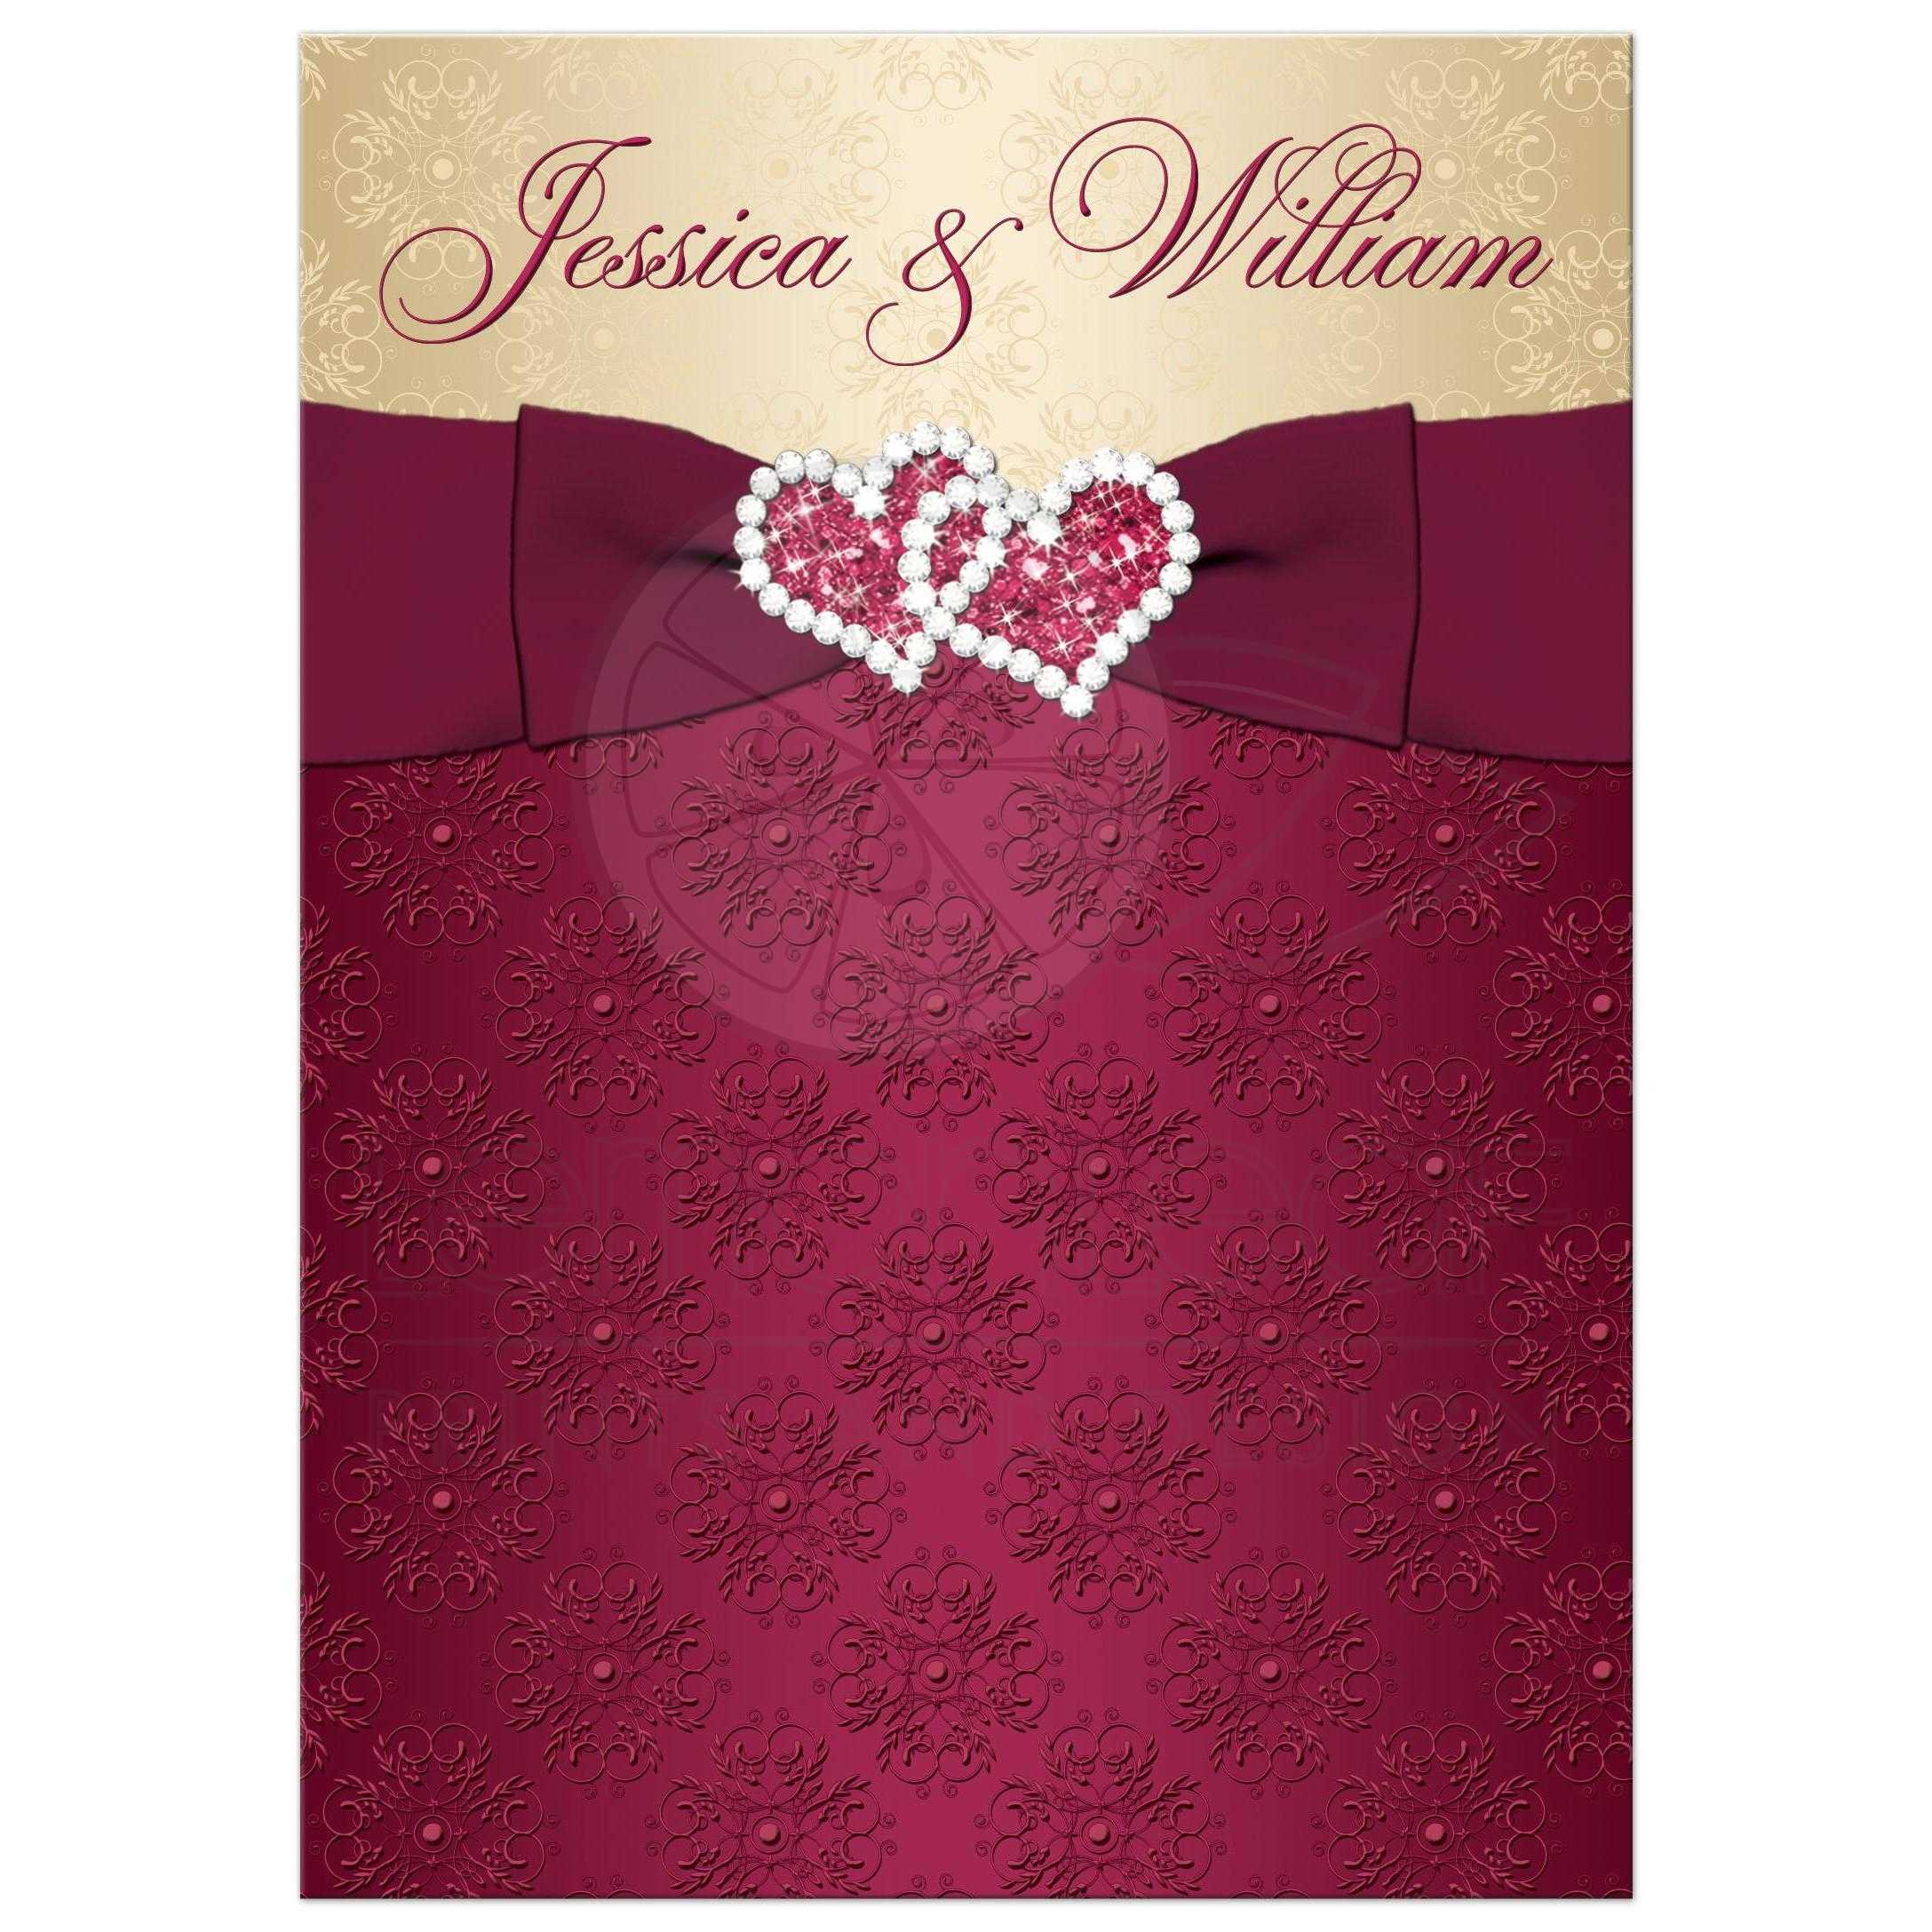 Superior Great Burgundy And Gold Damask And Scrolls Wedding Invitations With Ribbon,  Bow And Jeweled Joined ...